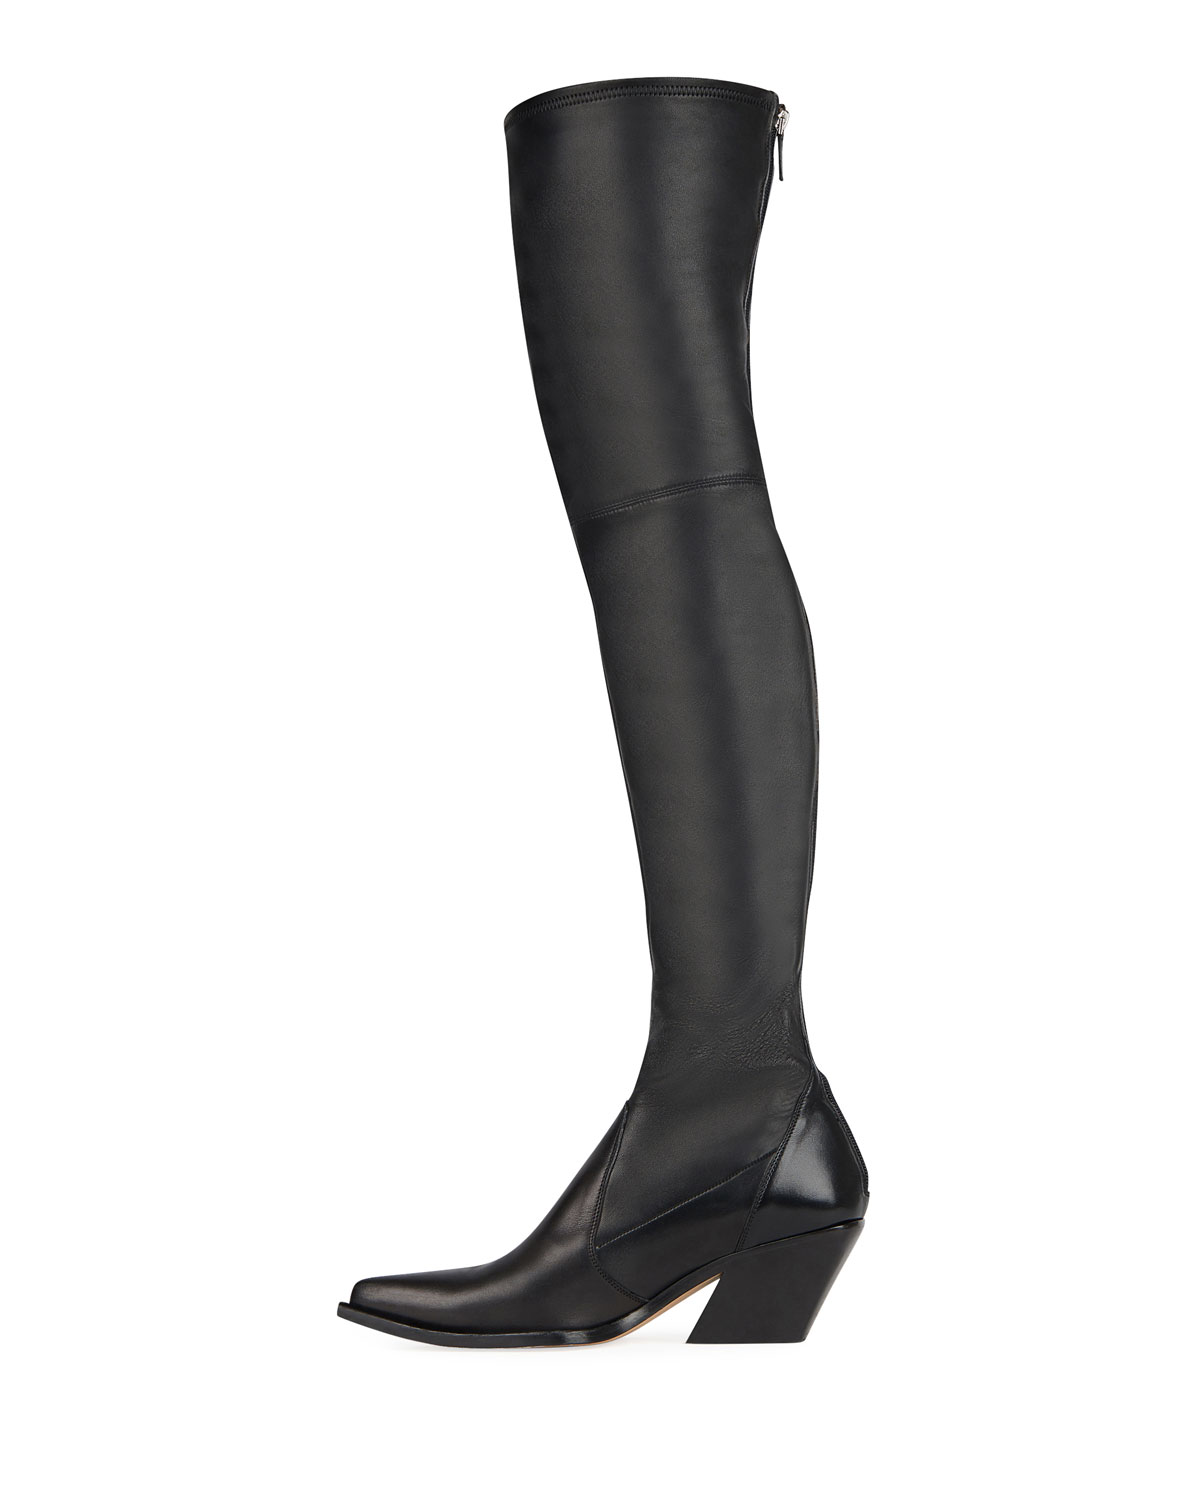 aea2fe3f425 Givenchy Over-The-Knee Cowboy Boot